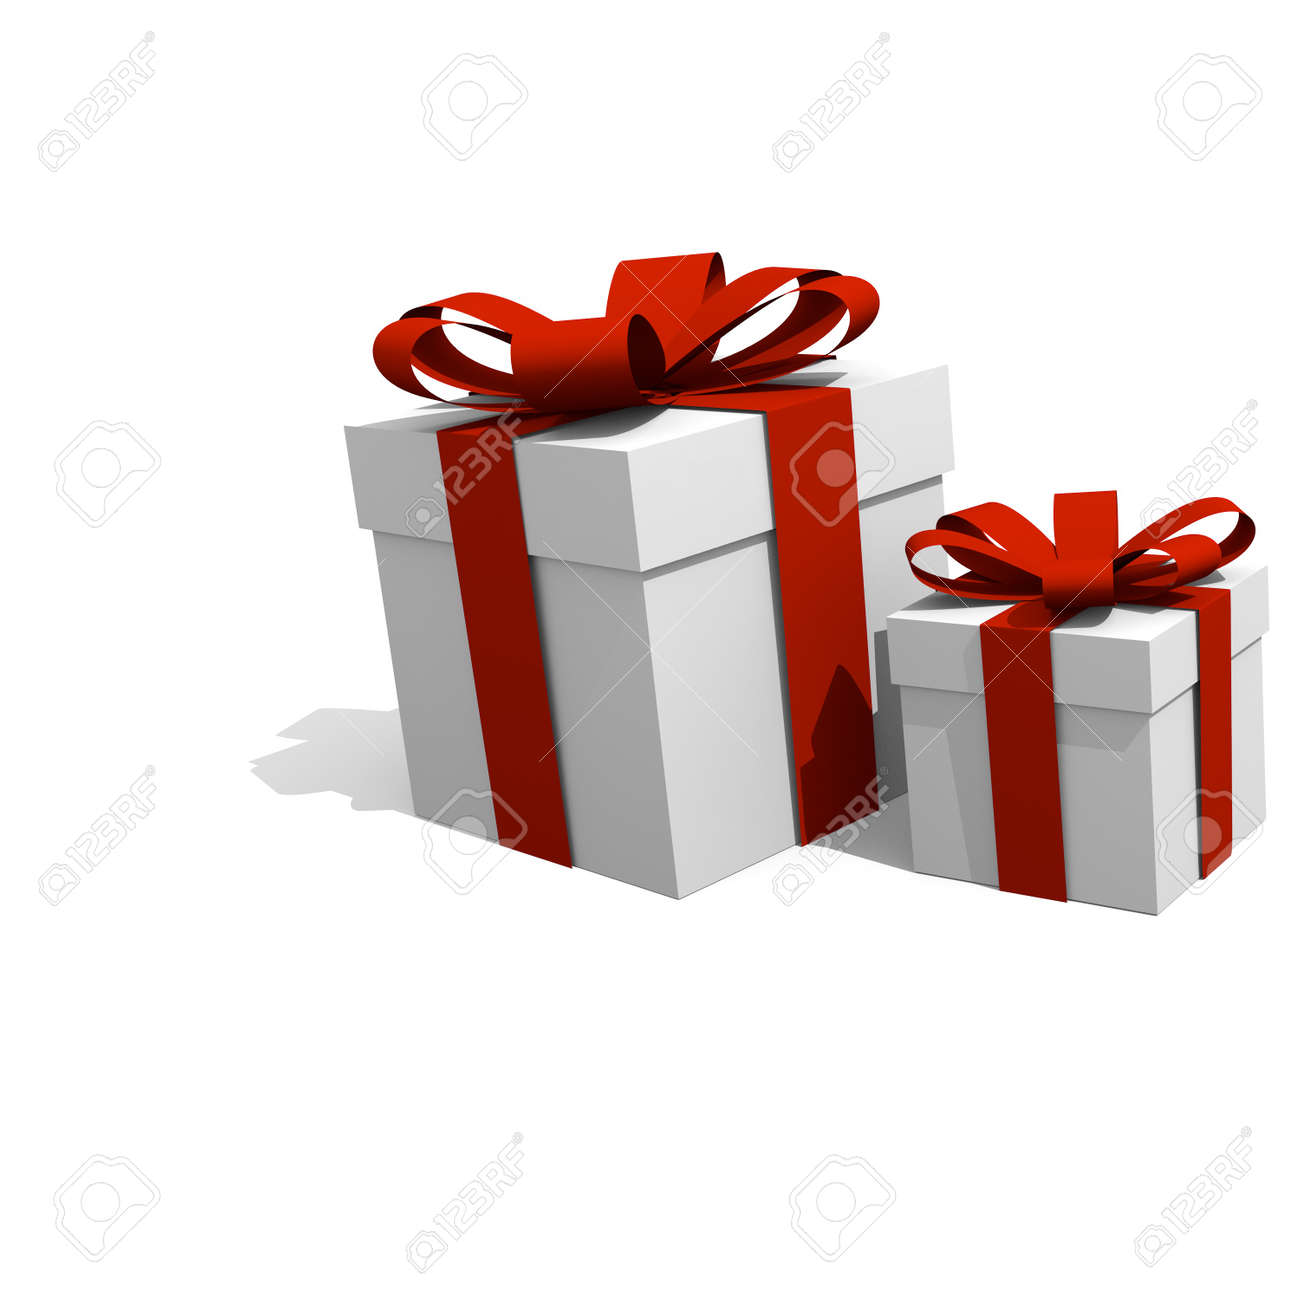 Christmas Presents On A White Background, 3D Image Stock Photo ...